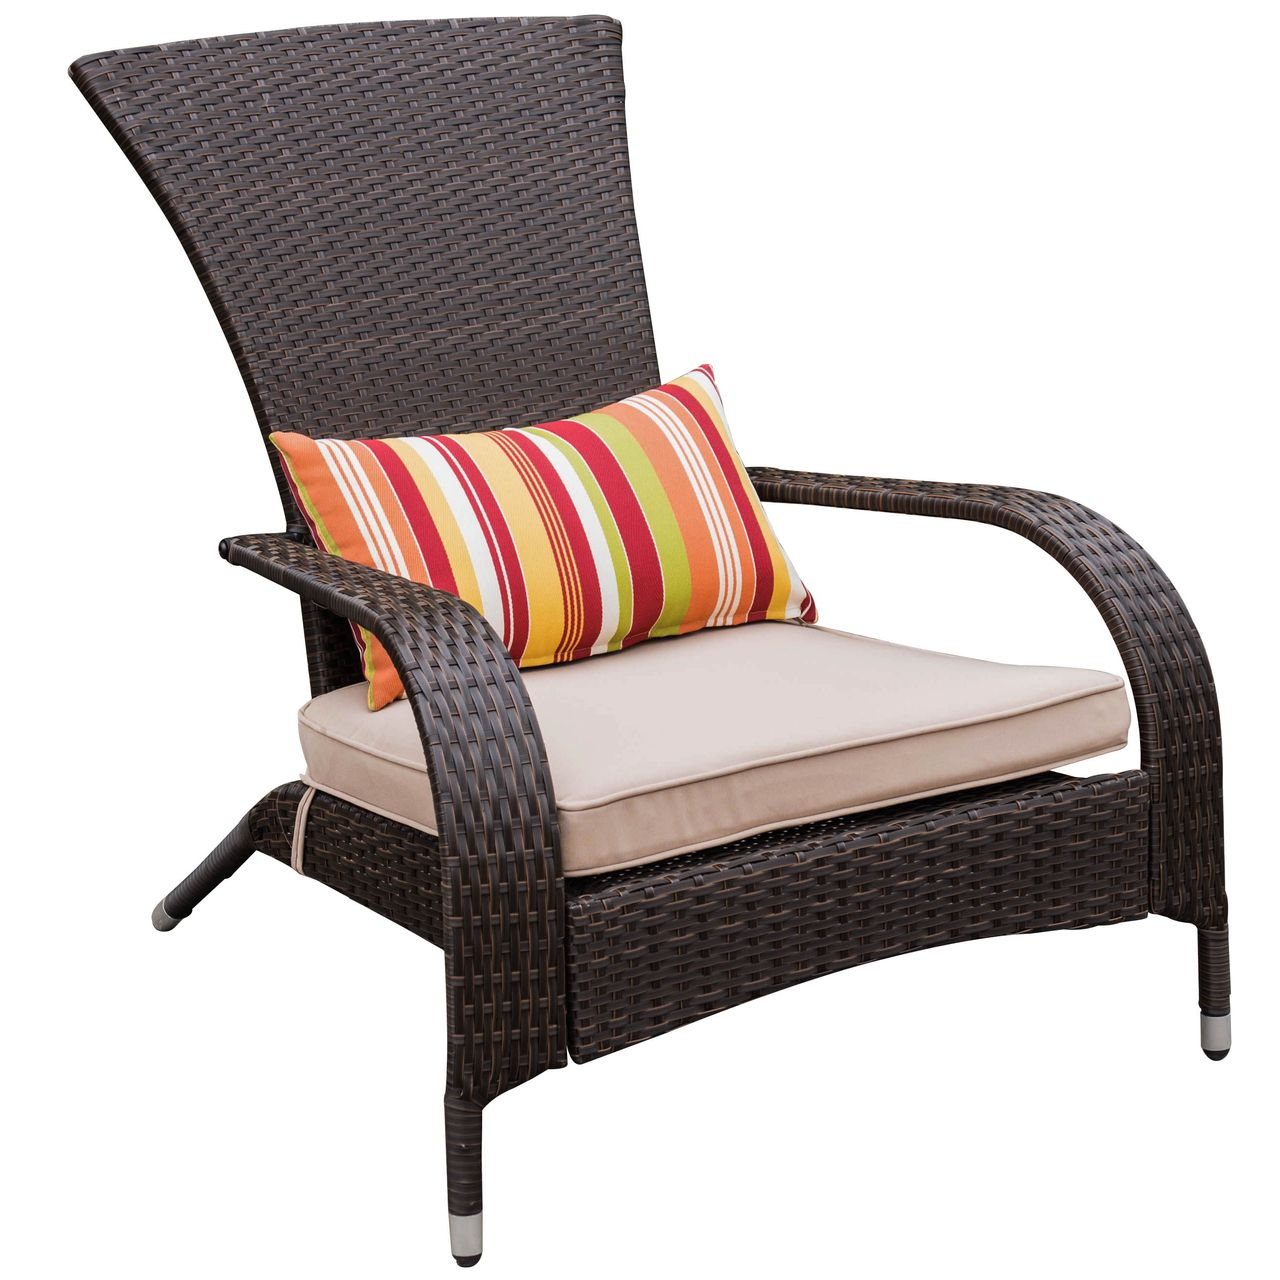 Deluxe Wicker Adirondack Chair Outdoor Patio Yard Furniture All Weather With Cushion And Pillow With Images Outdoor Chairs Cheap Patio Furniture Cheap Modern Furniture